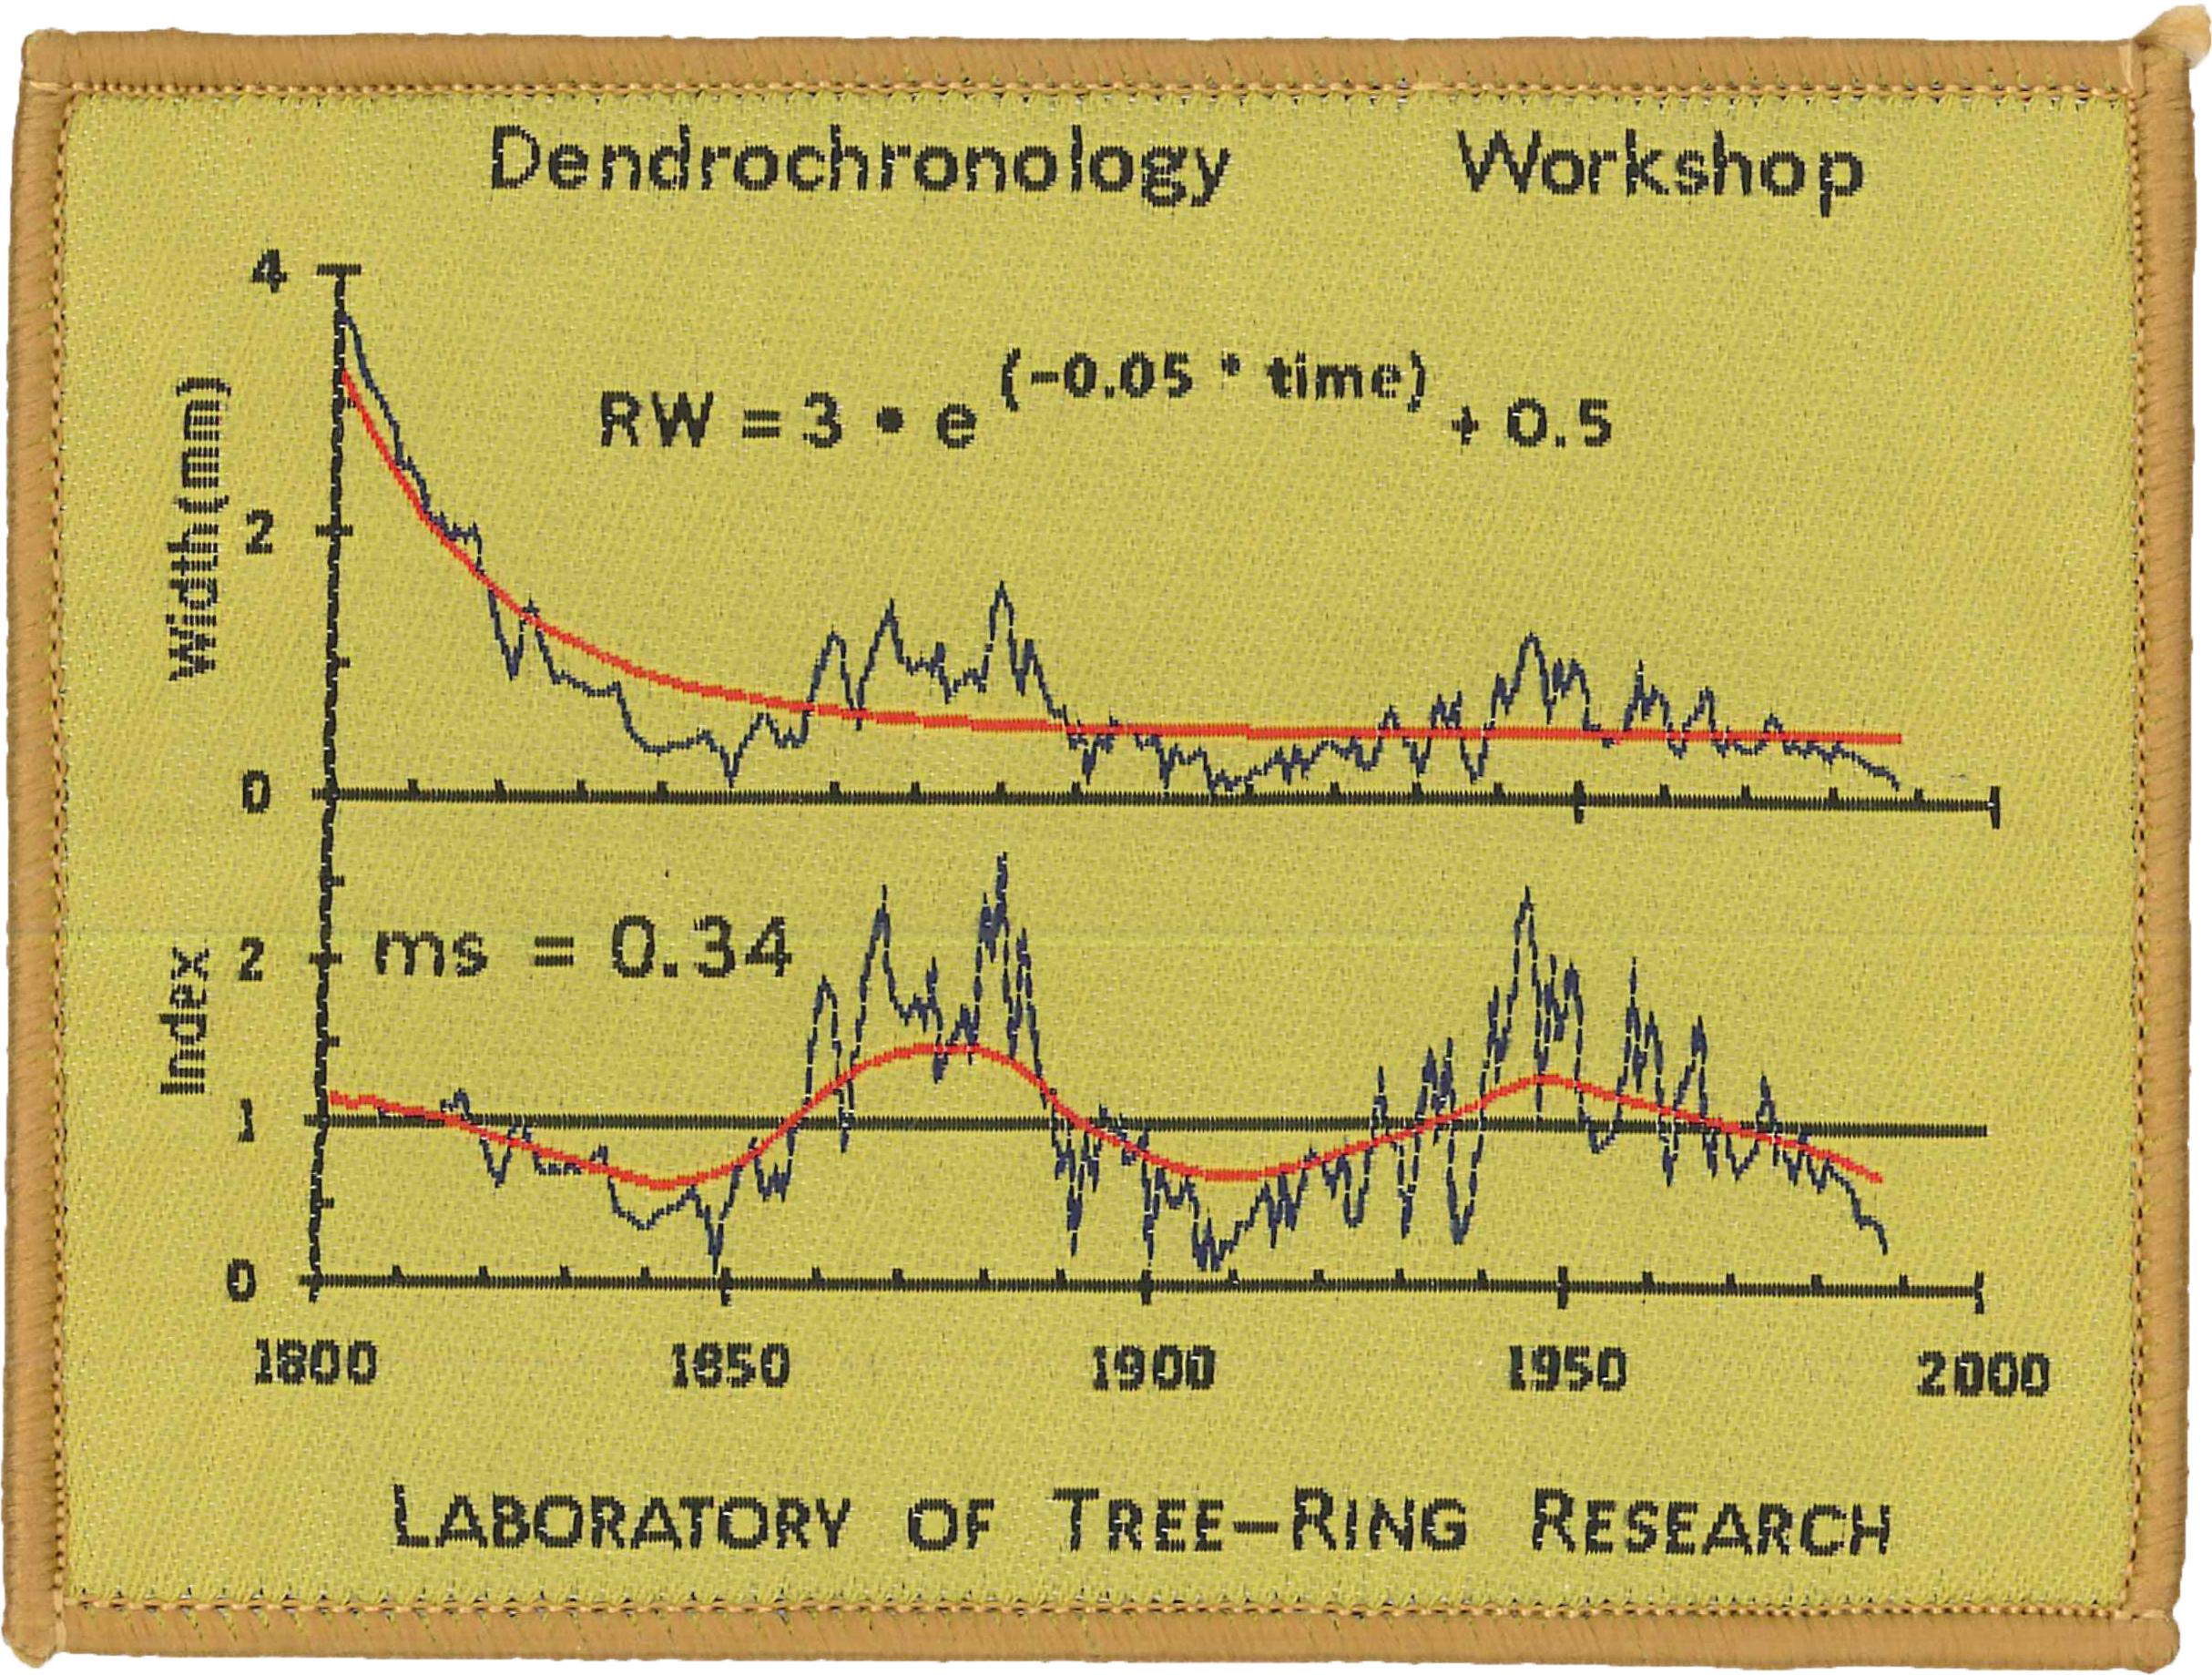 Cross dating methods in dendrochronology and climate